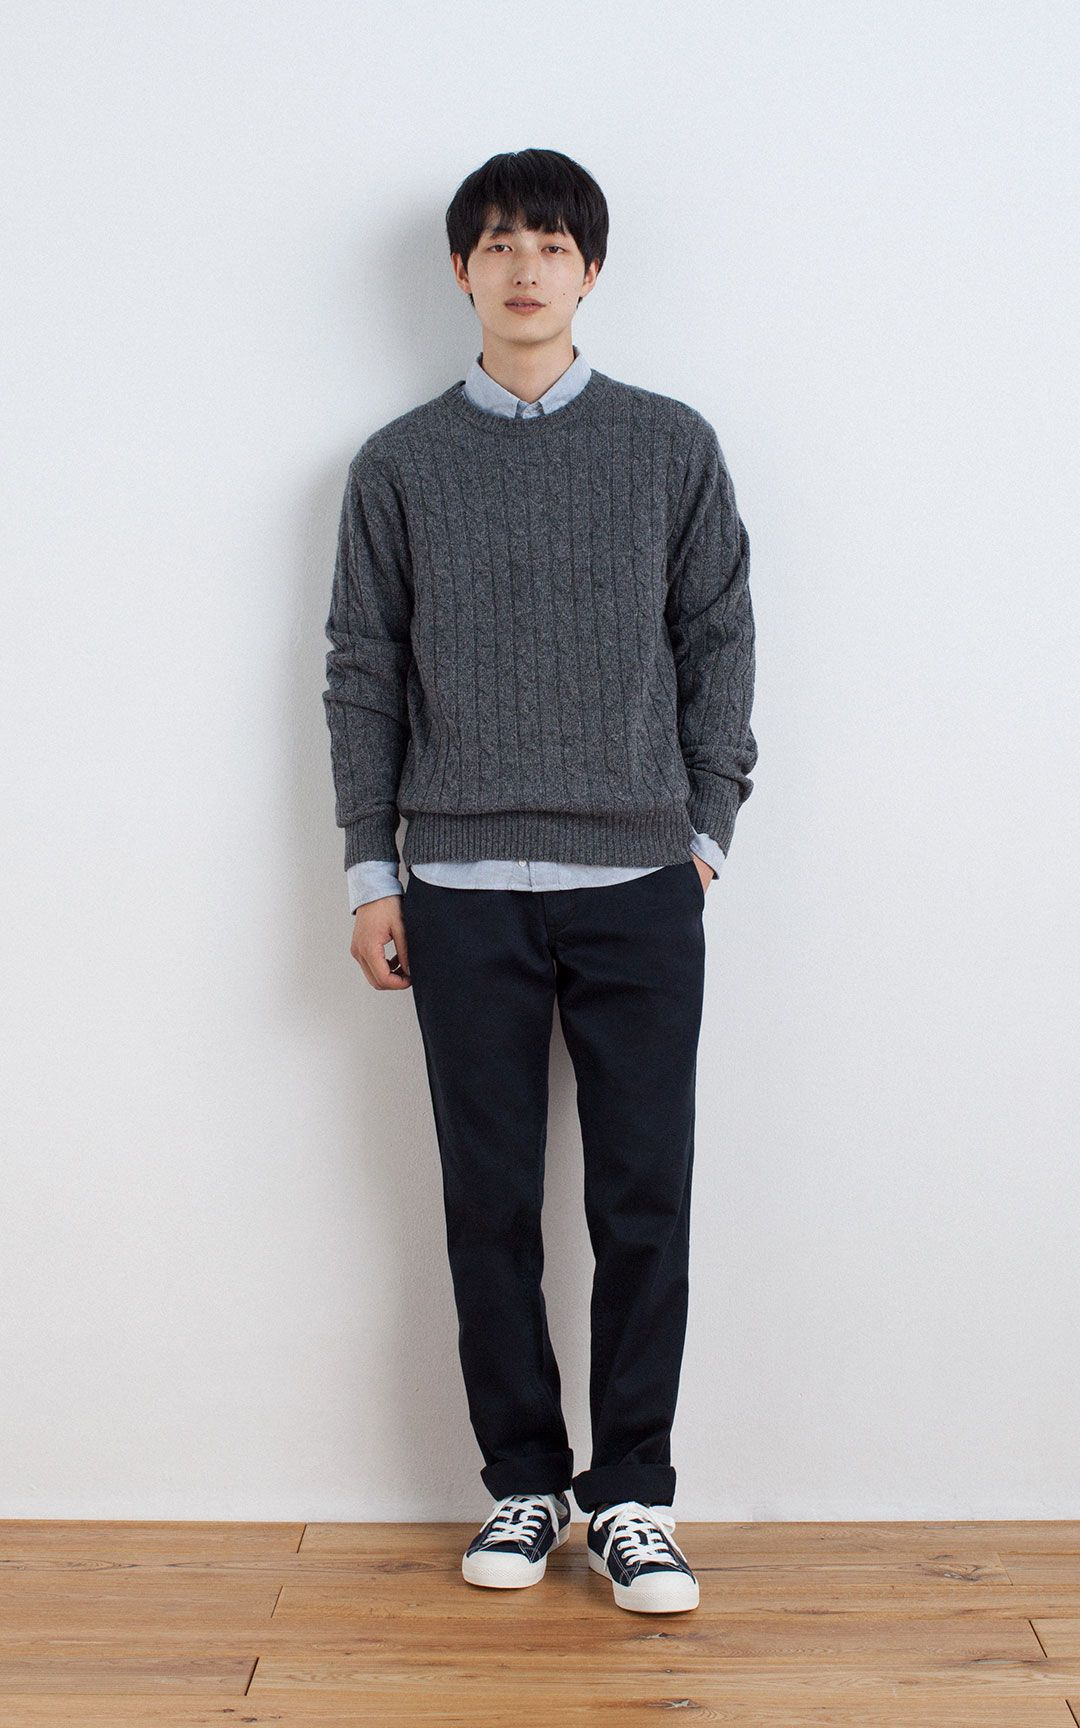 Muji Merino Wool Cable Knitted Middle Gauge Sweater